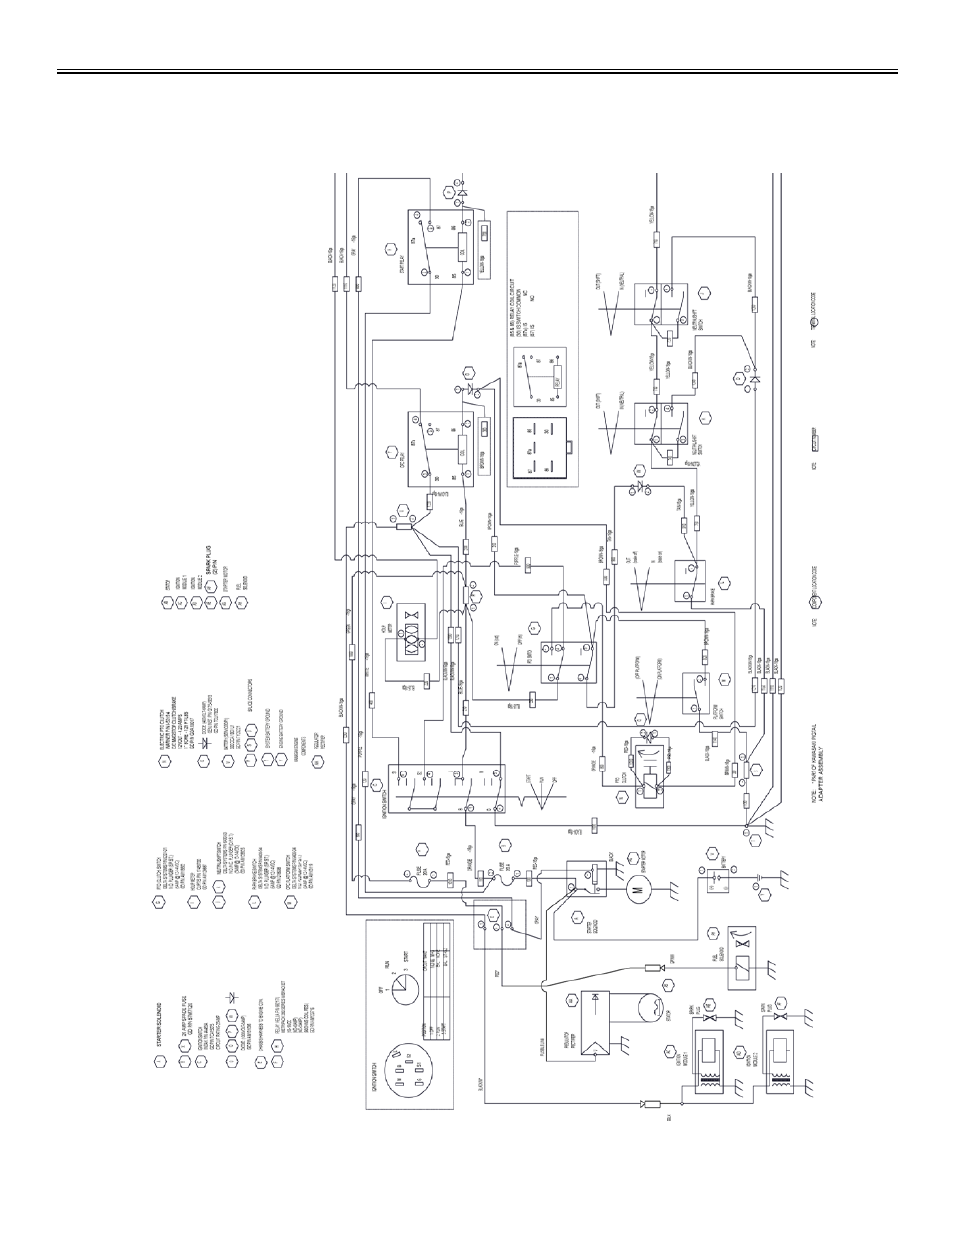 hight resolution of great dane wiring schematic wiring diagram schematics great dane hood great dane wiring schematic